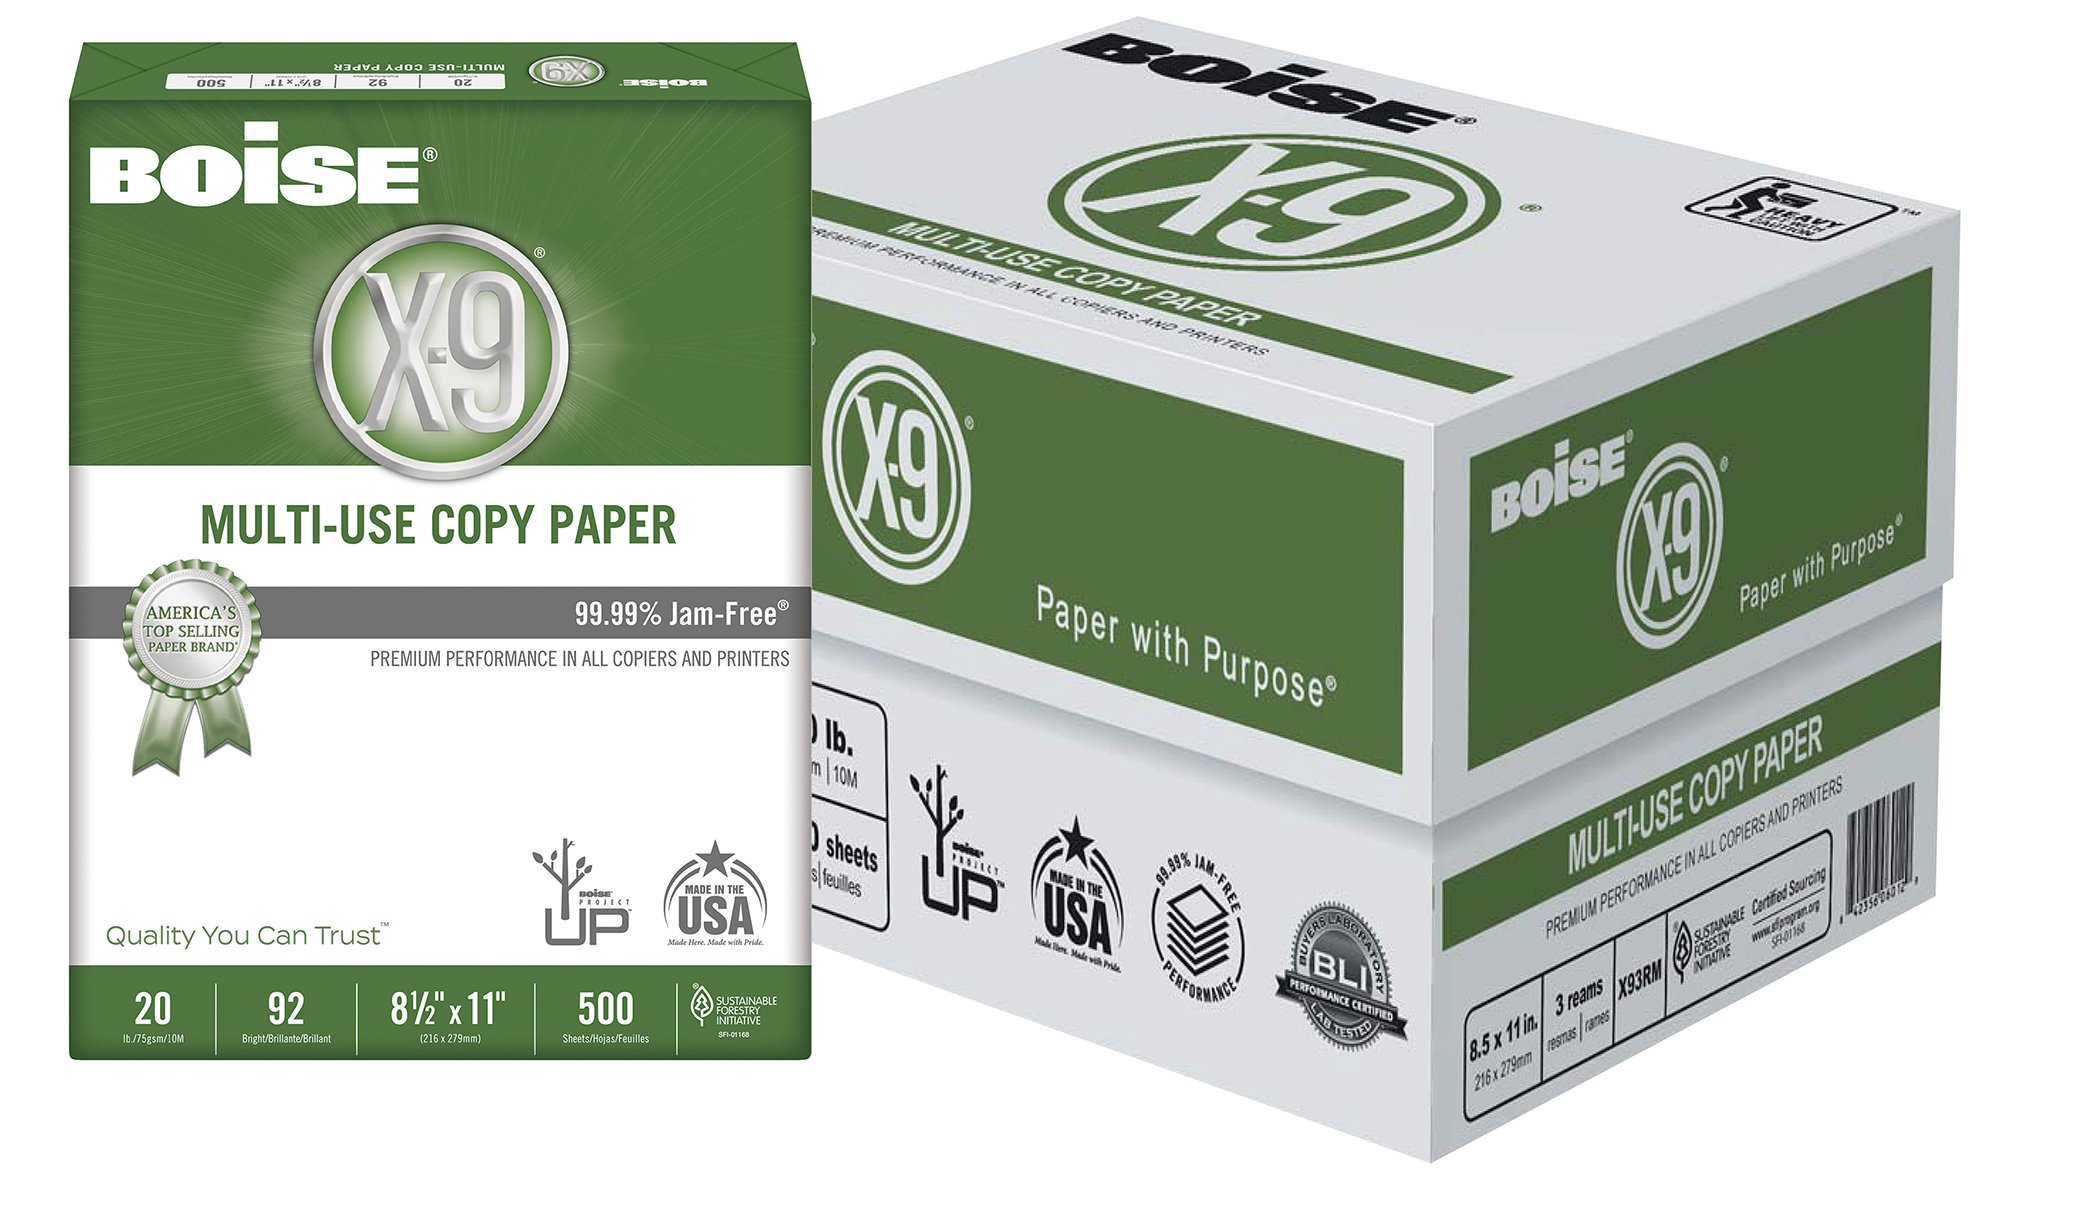 BOISE X-9 Multi-Use Copy Paper, 8.5 x 11, 92 Bright White, 20 lb, 3 ream carton (1,500 Sheets)